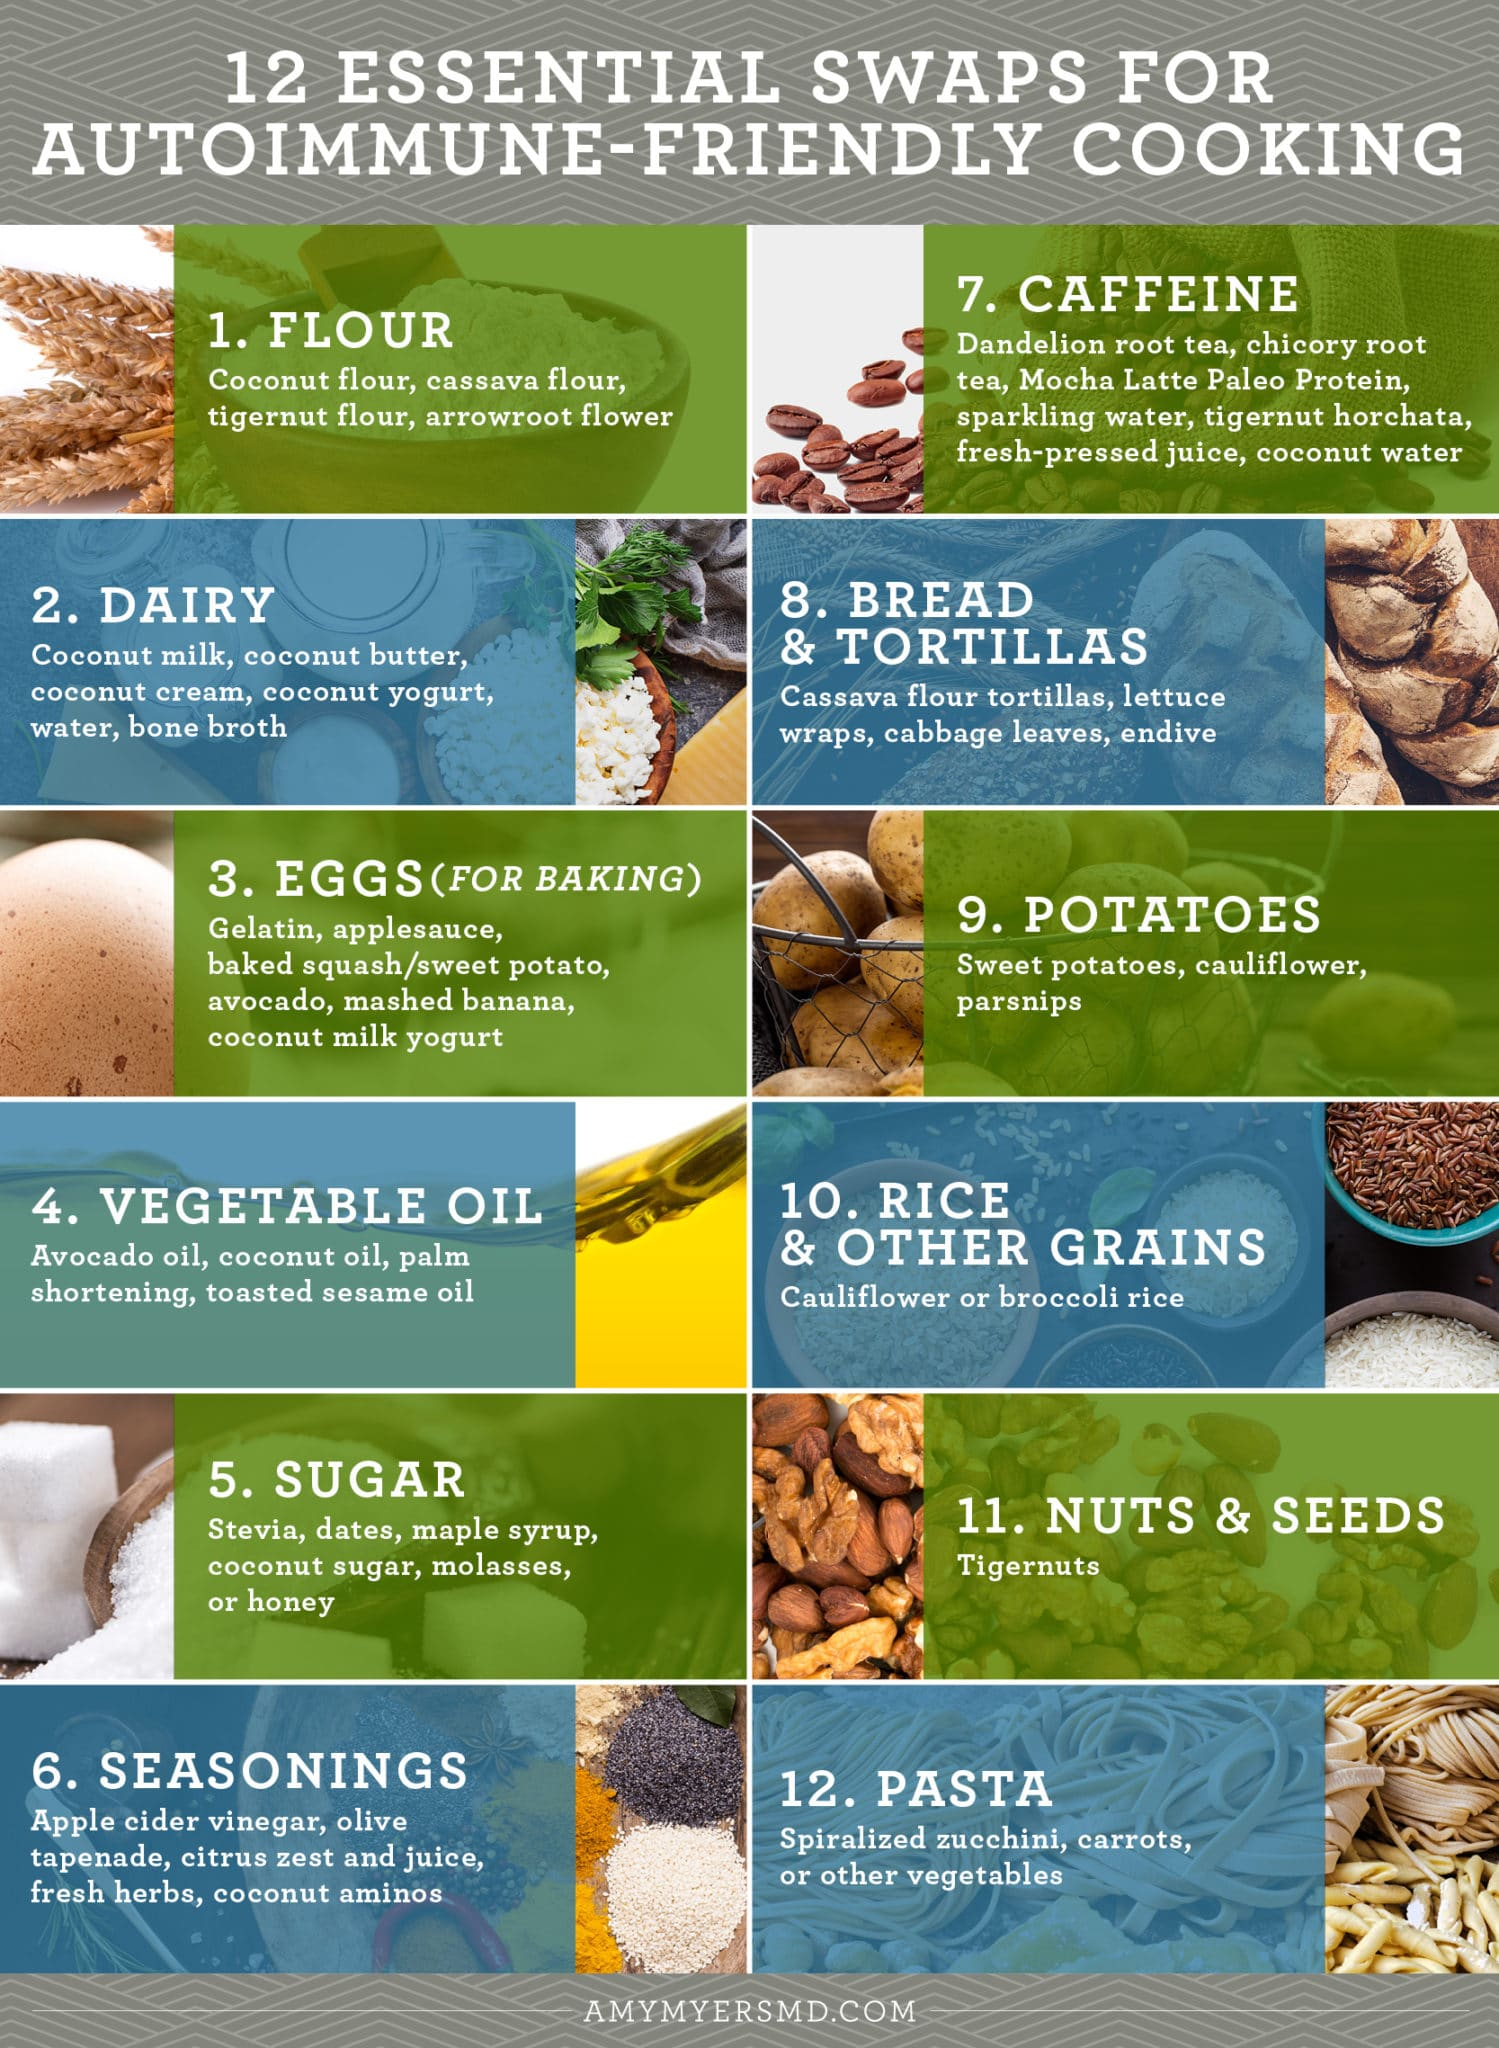 12 Essential Swaps for Autoimmune-Friendly Cooking - Infographic - Amy Myers MD